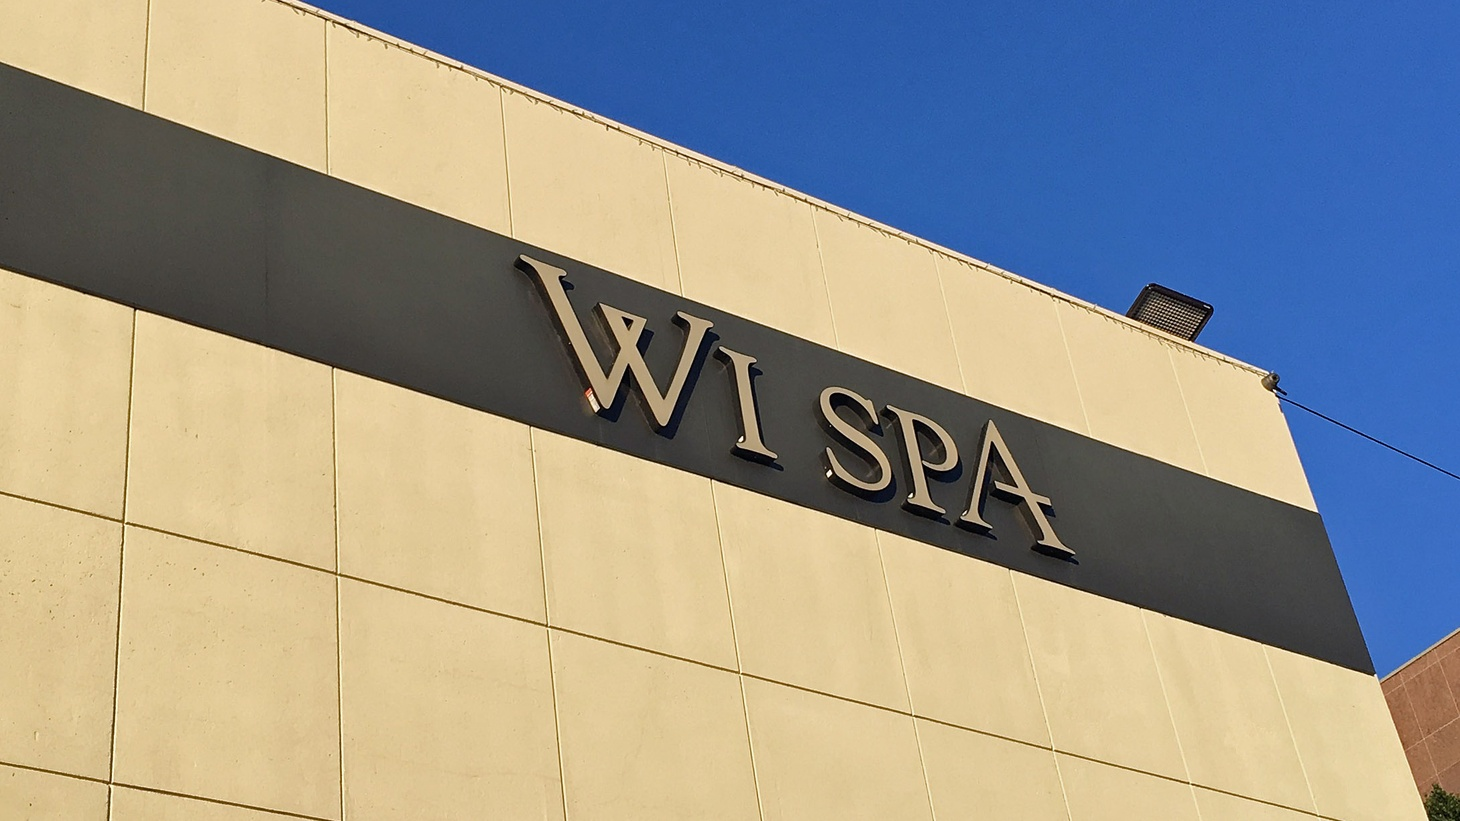 Wi Spa in Koreatown became the battleground over transgender rights after the business' policy to allow transgender women to use women's facilities sparked uproad among far-right activists.